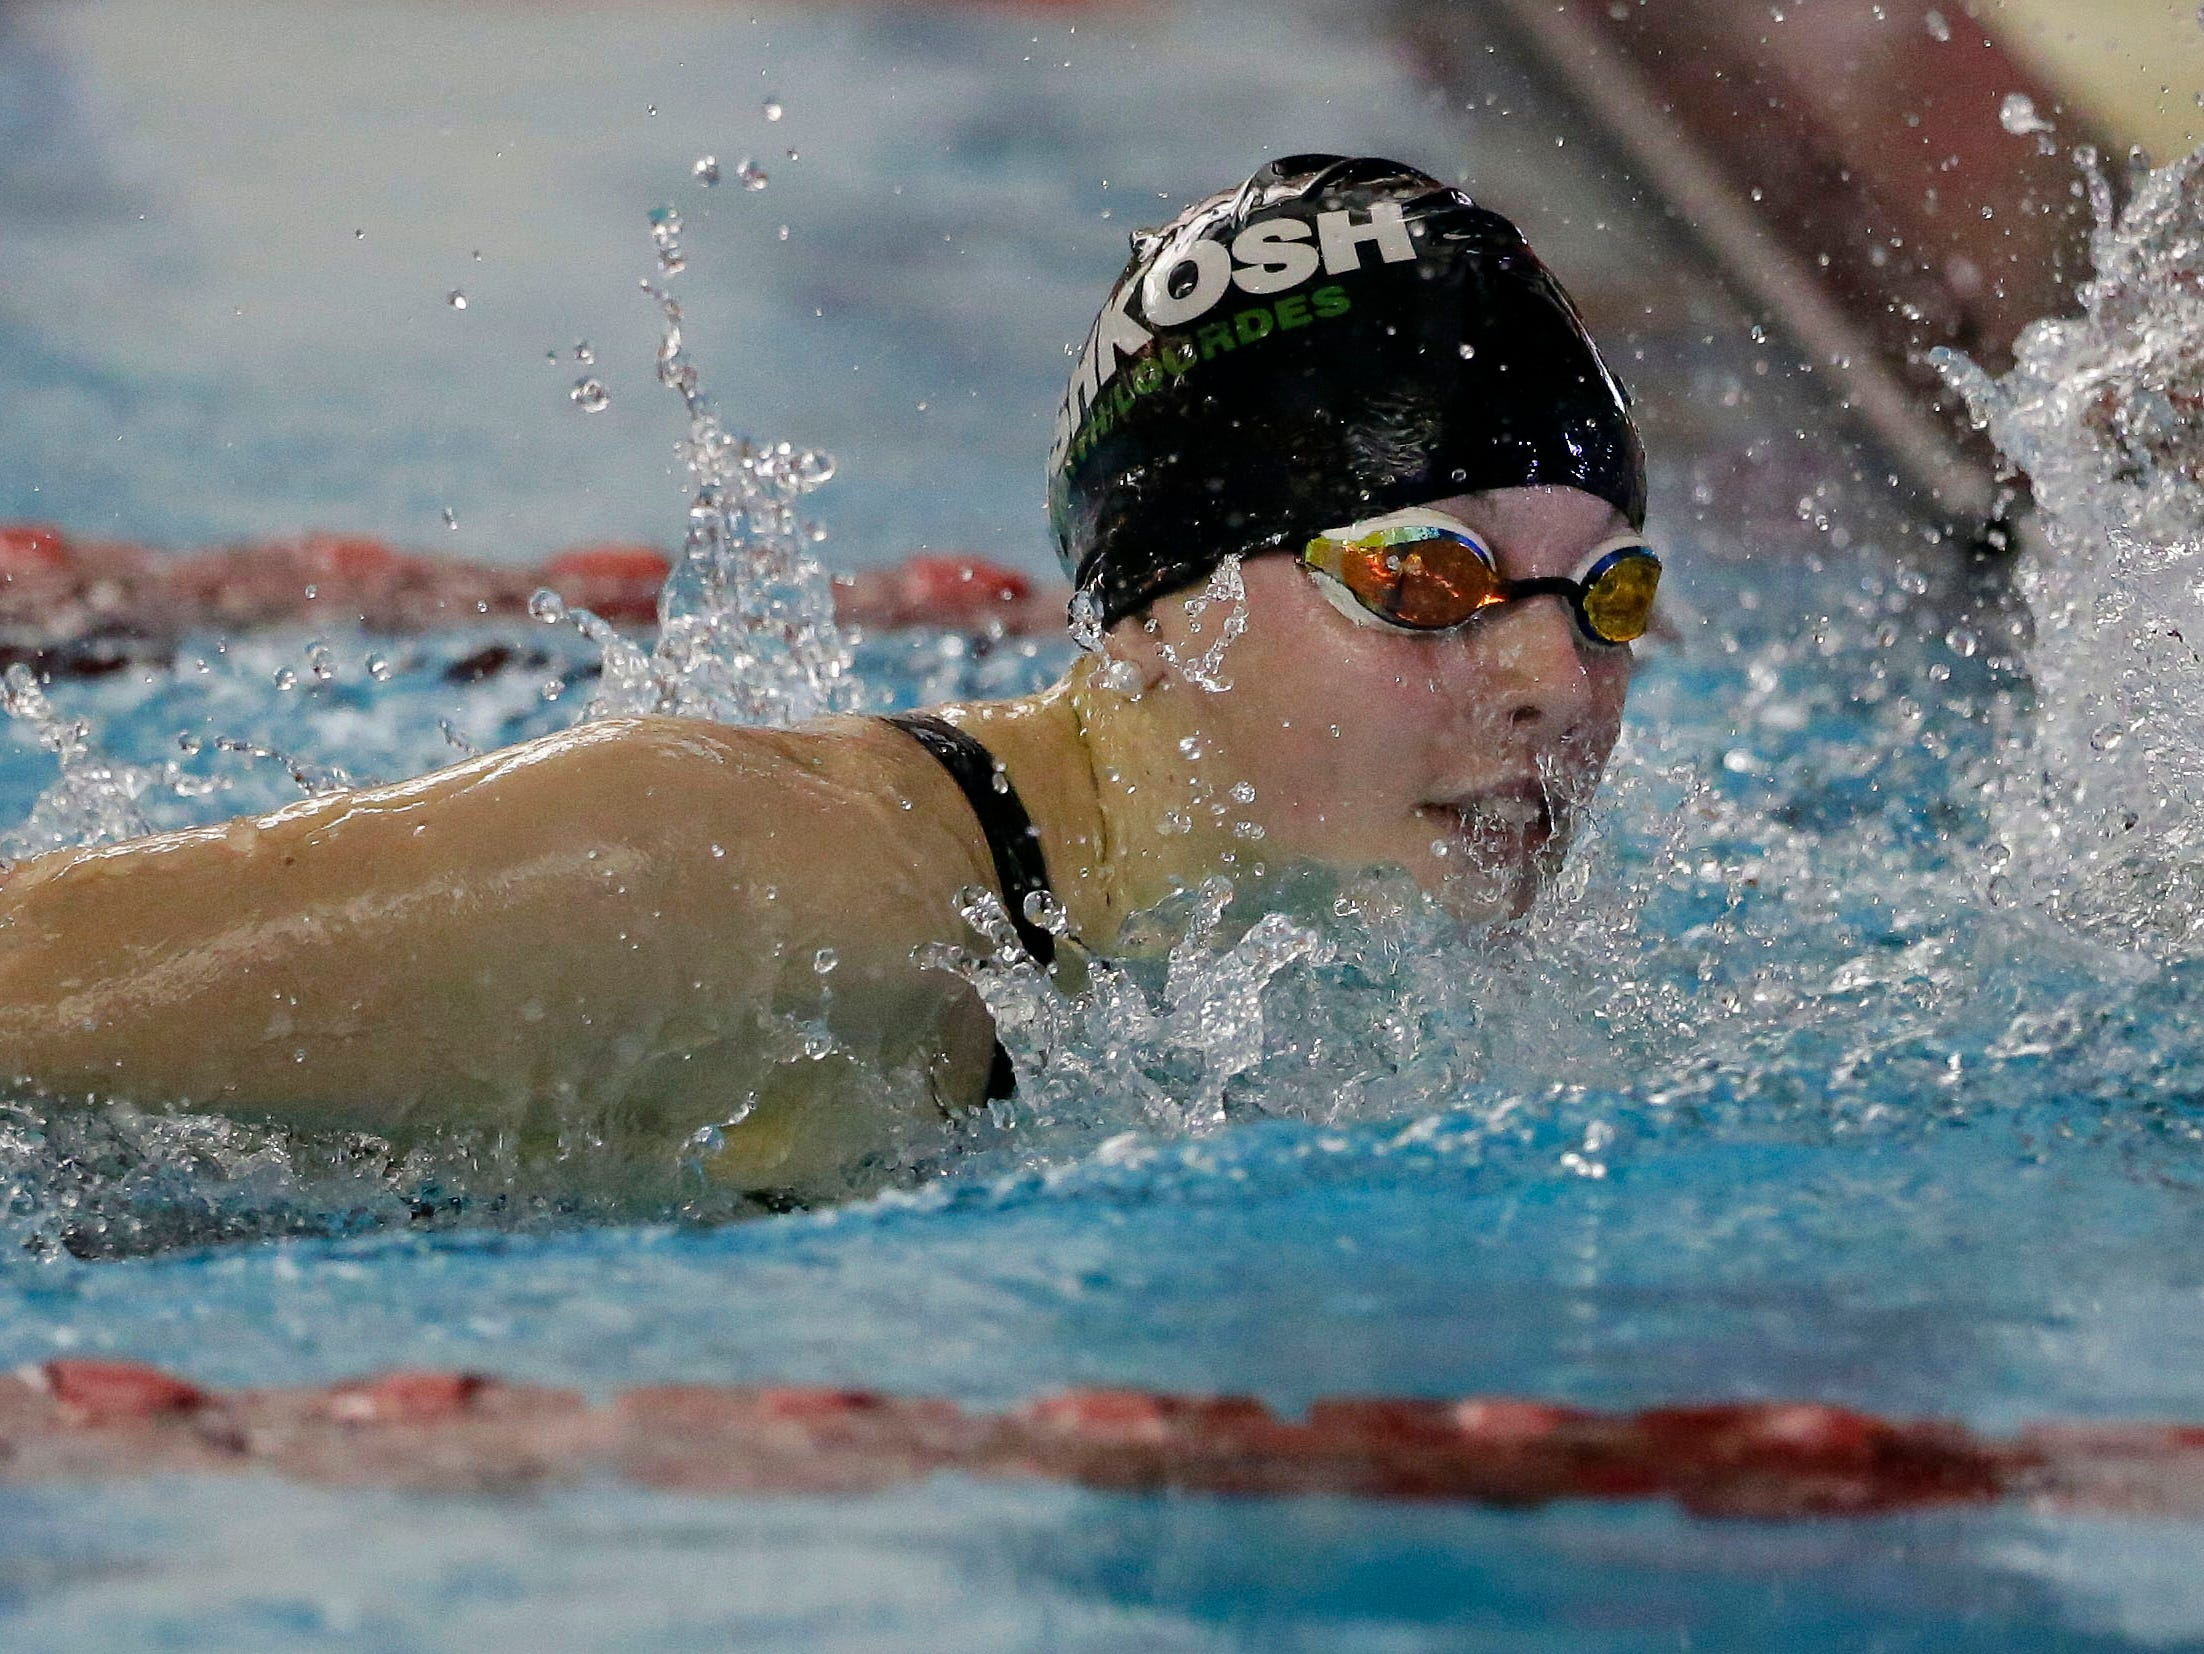 Ali Pecore of Oshkosh North/Lourdes looks at her time at the finish of the 500 Yard Freestyle as the WIAA Division 1 swimming sectional meet takes place Saturday, November 3, 2018, at Neenah High School in Neenah, Wis. Winners advanced to state.Ron Page/USA TODAY NETWORK-Wisconsin